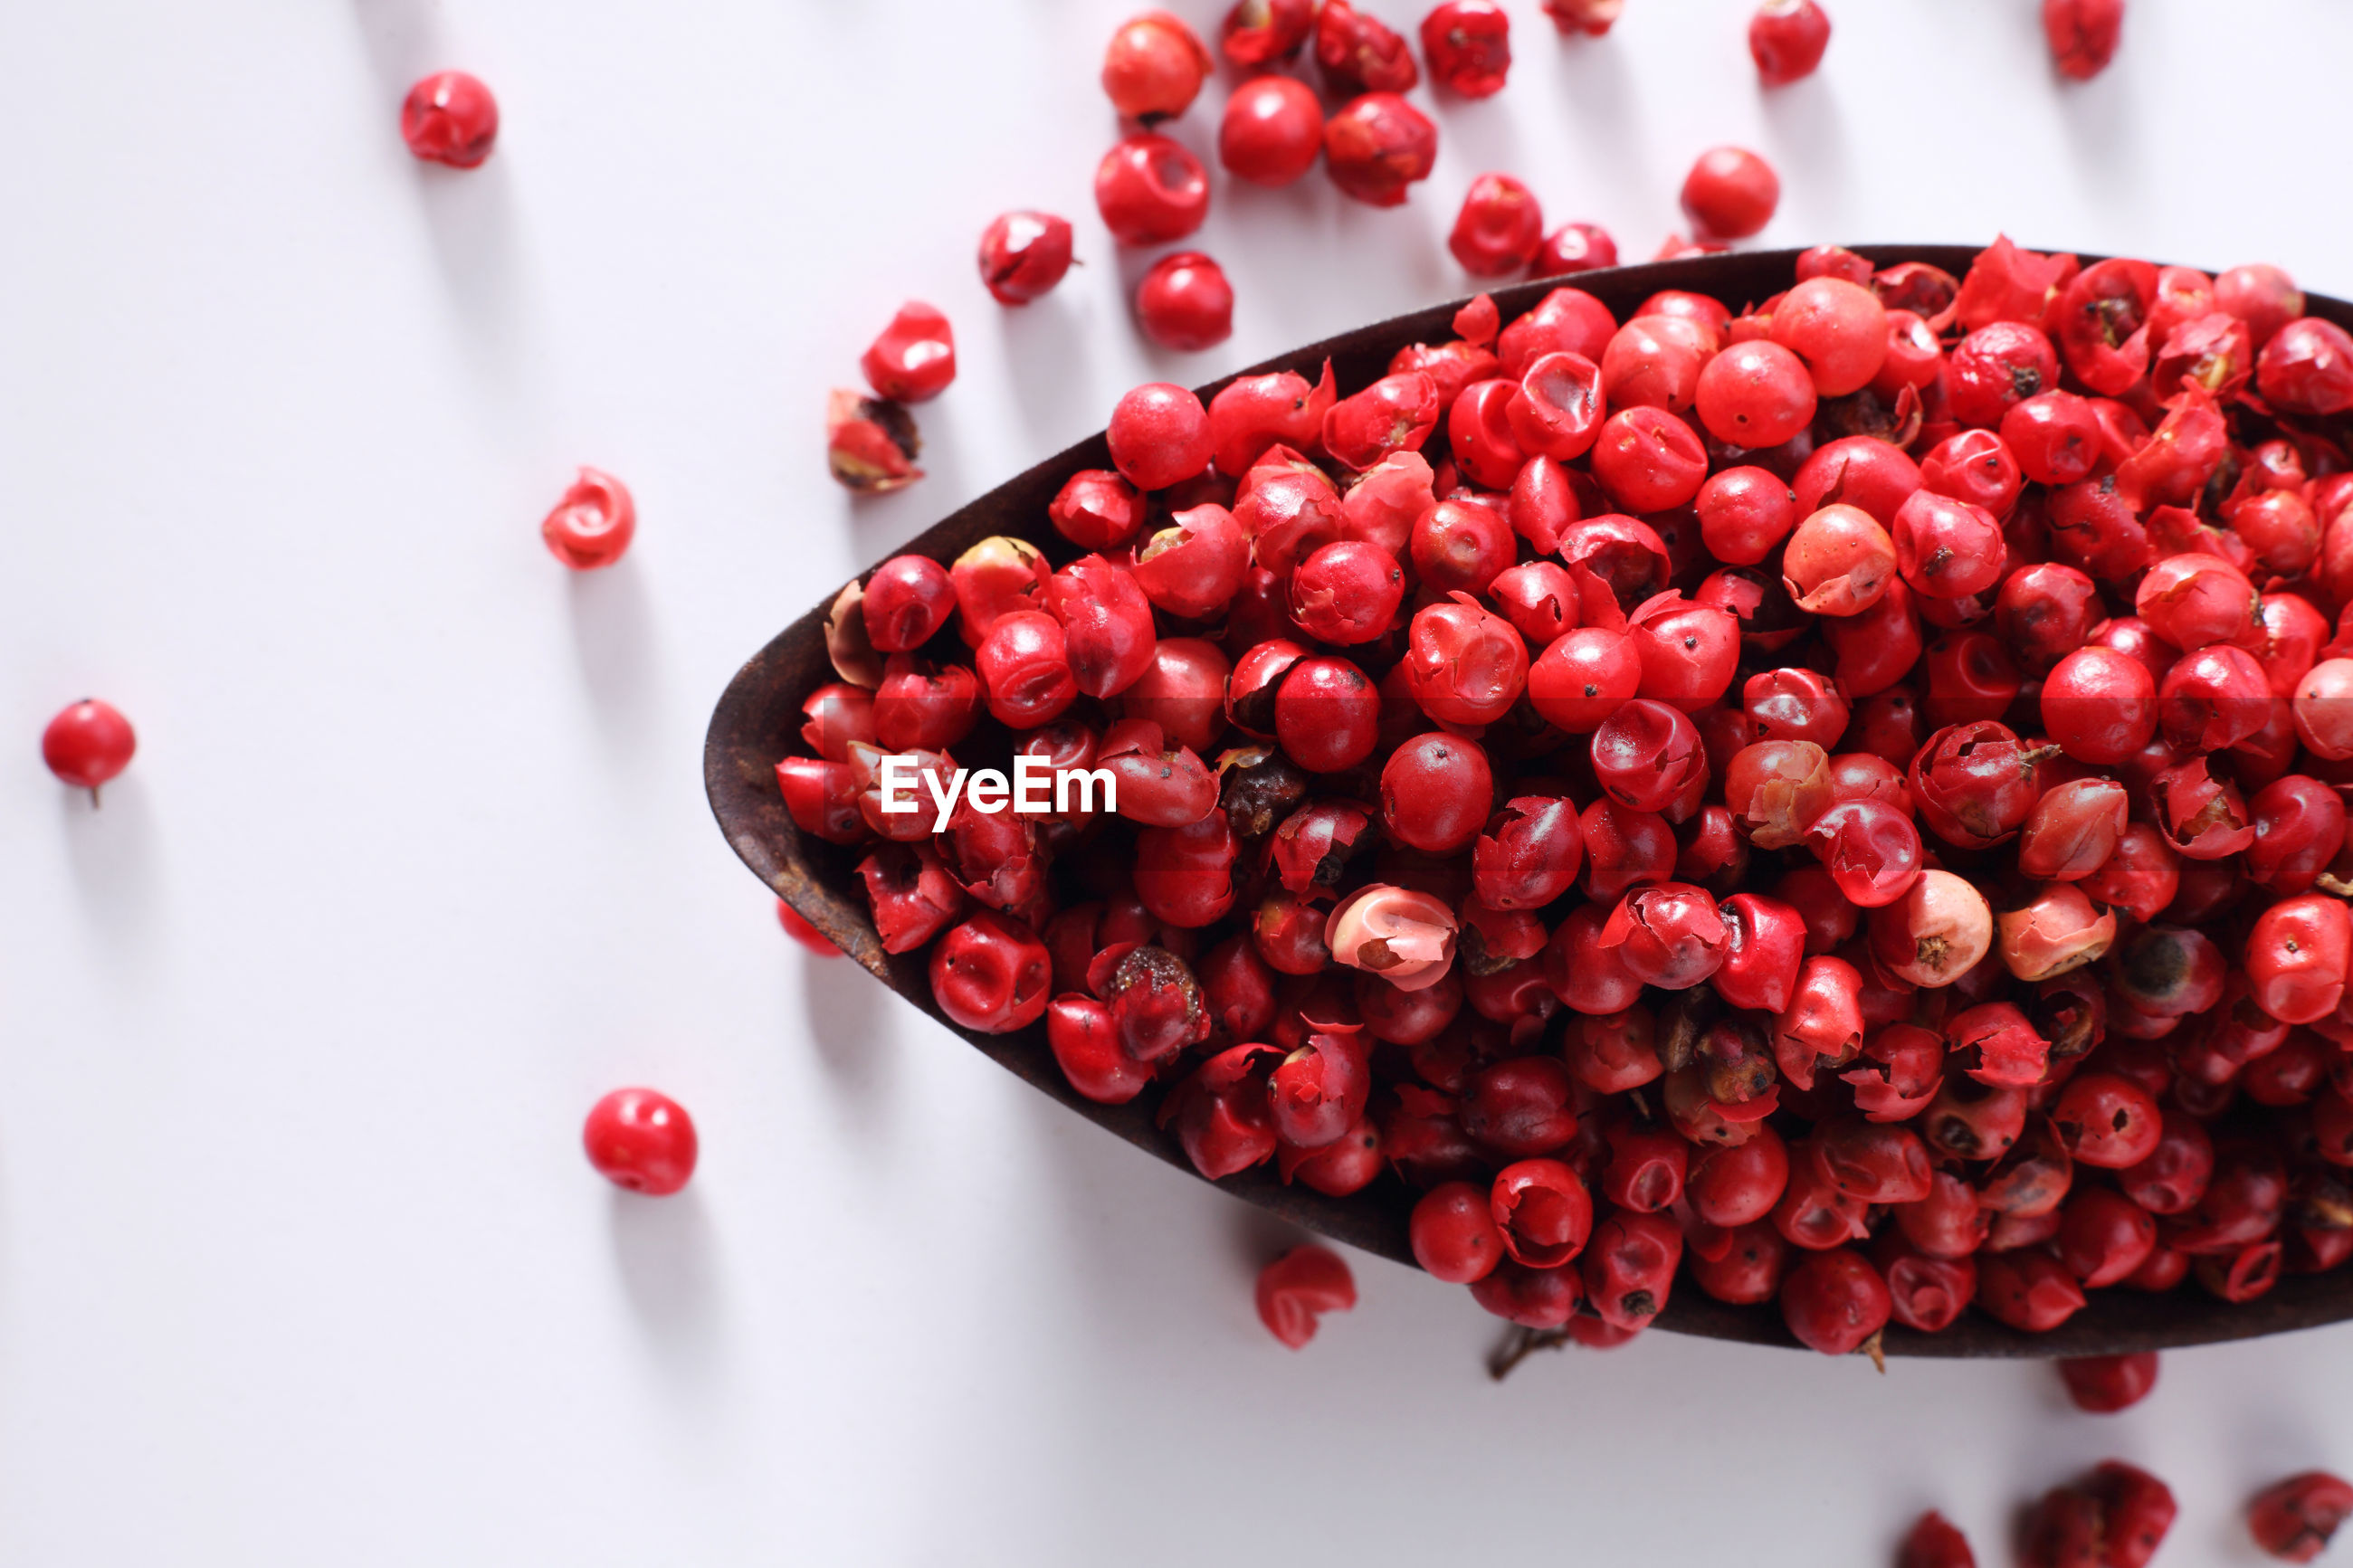 Close-up of red fruits in bowl on white background